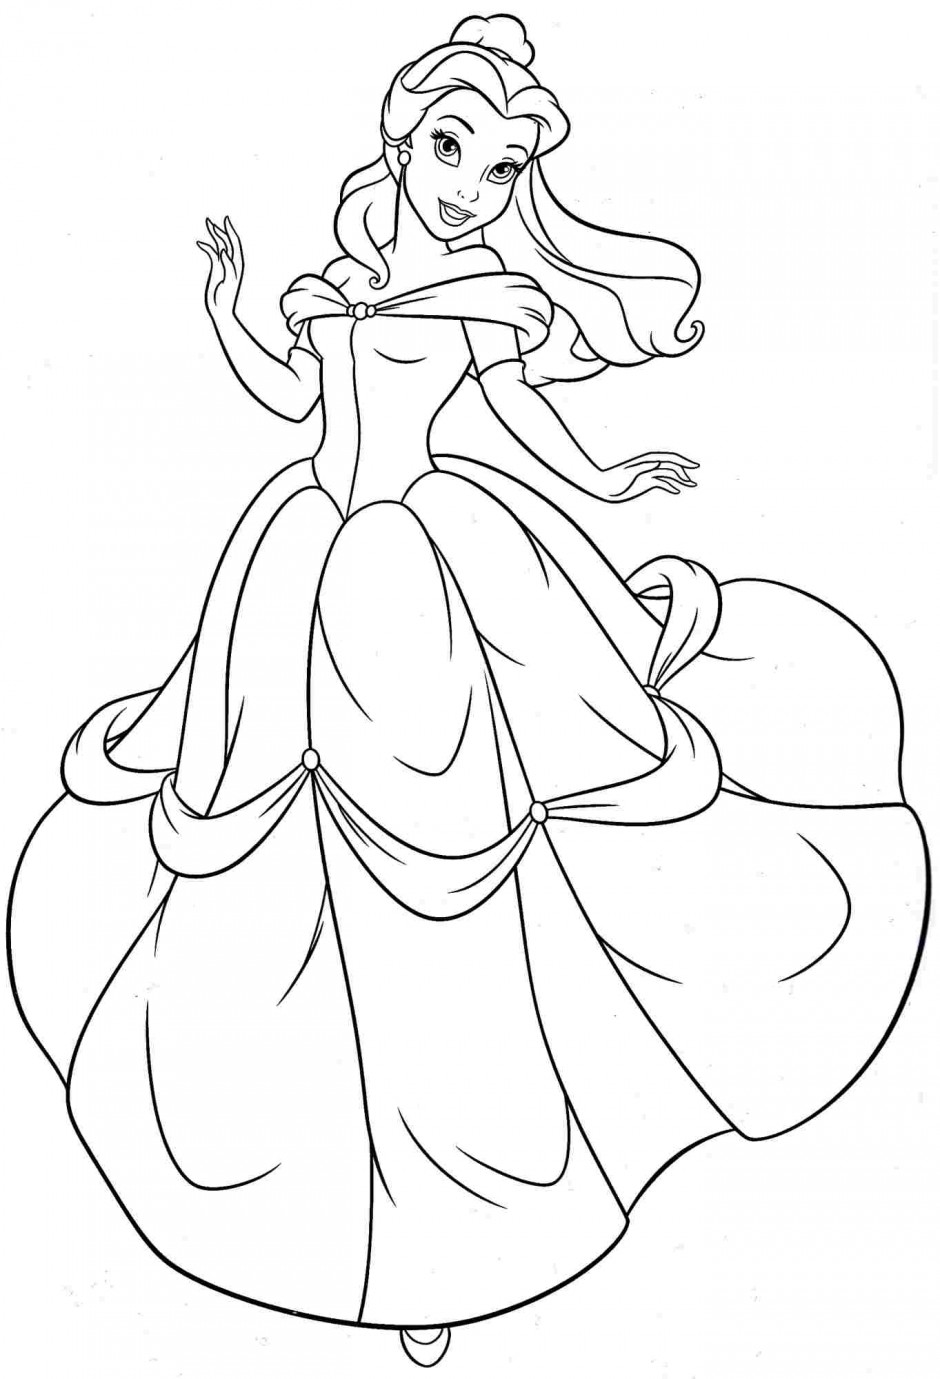 Coloring Book Pages Princess : Free printable belle coloring pages for kids